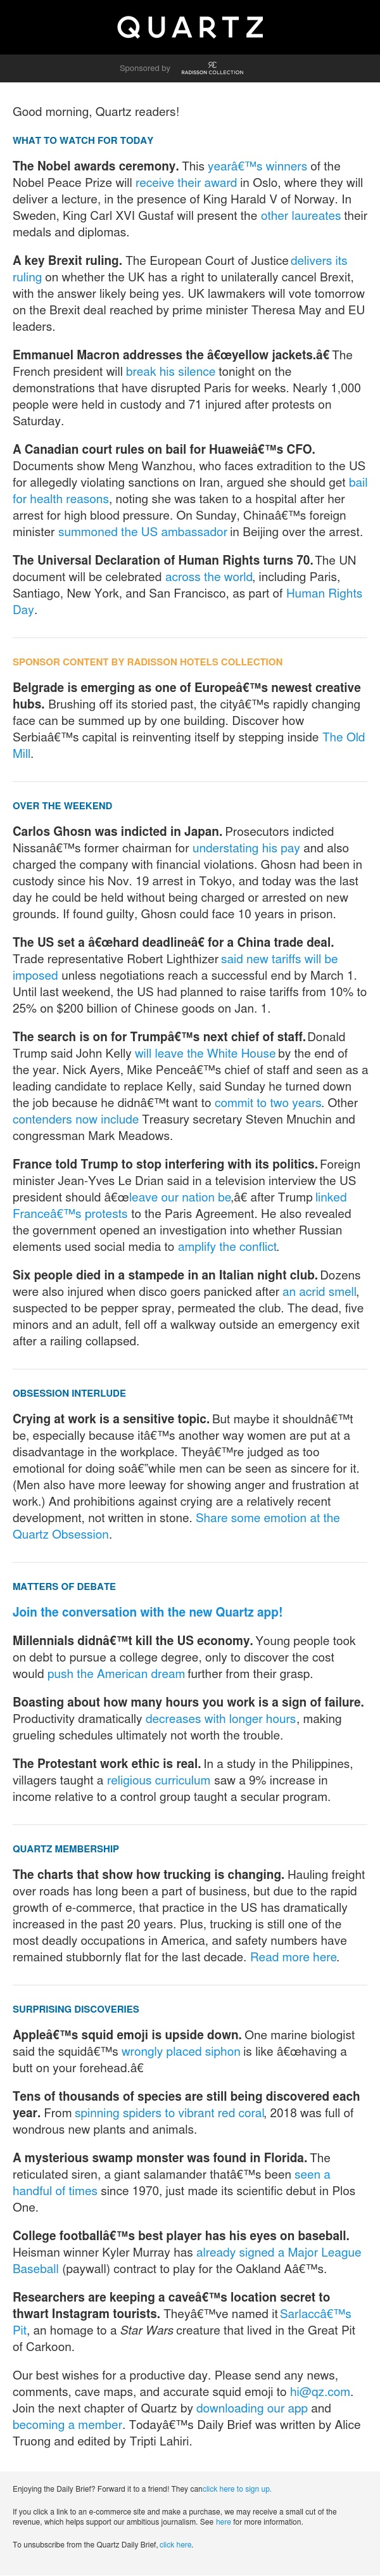 Brexit ruling, France's message to Trump, swamp monster